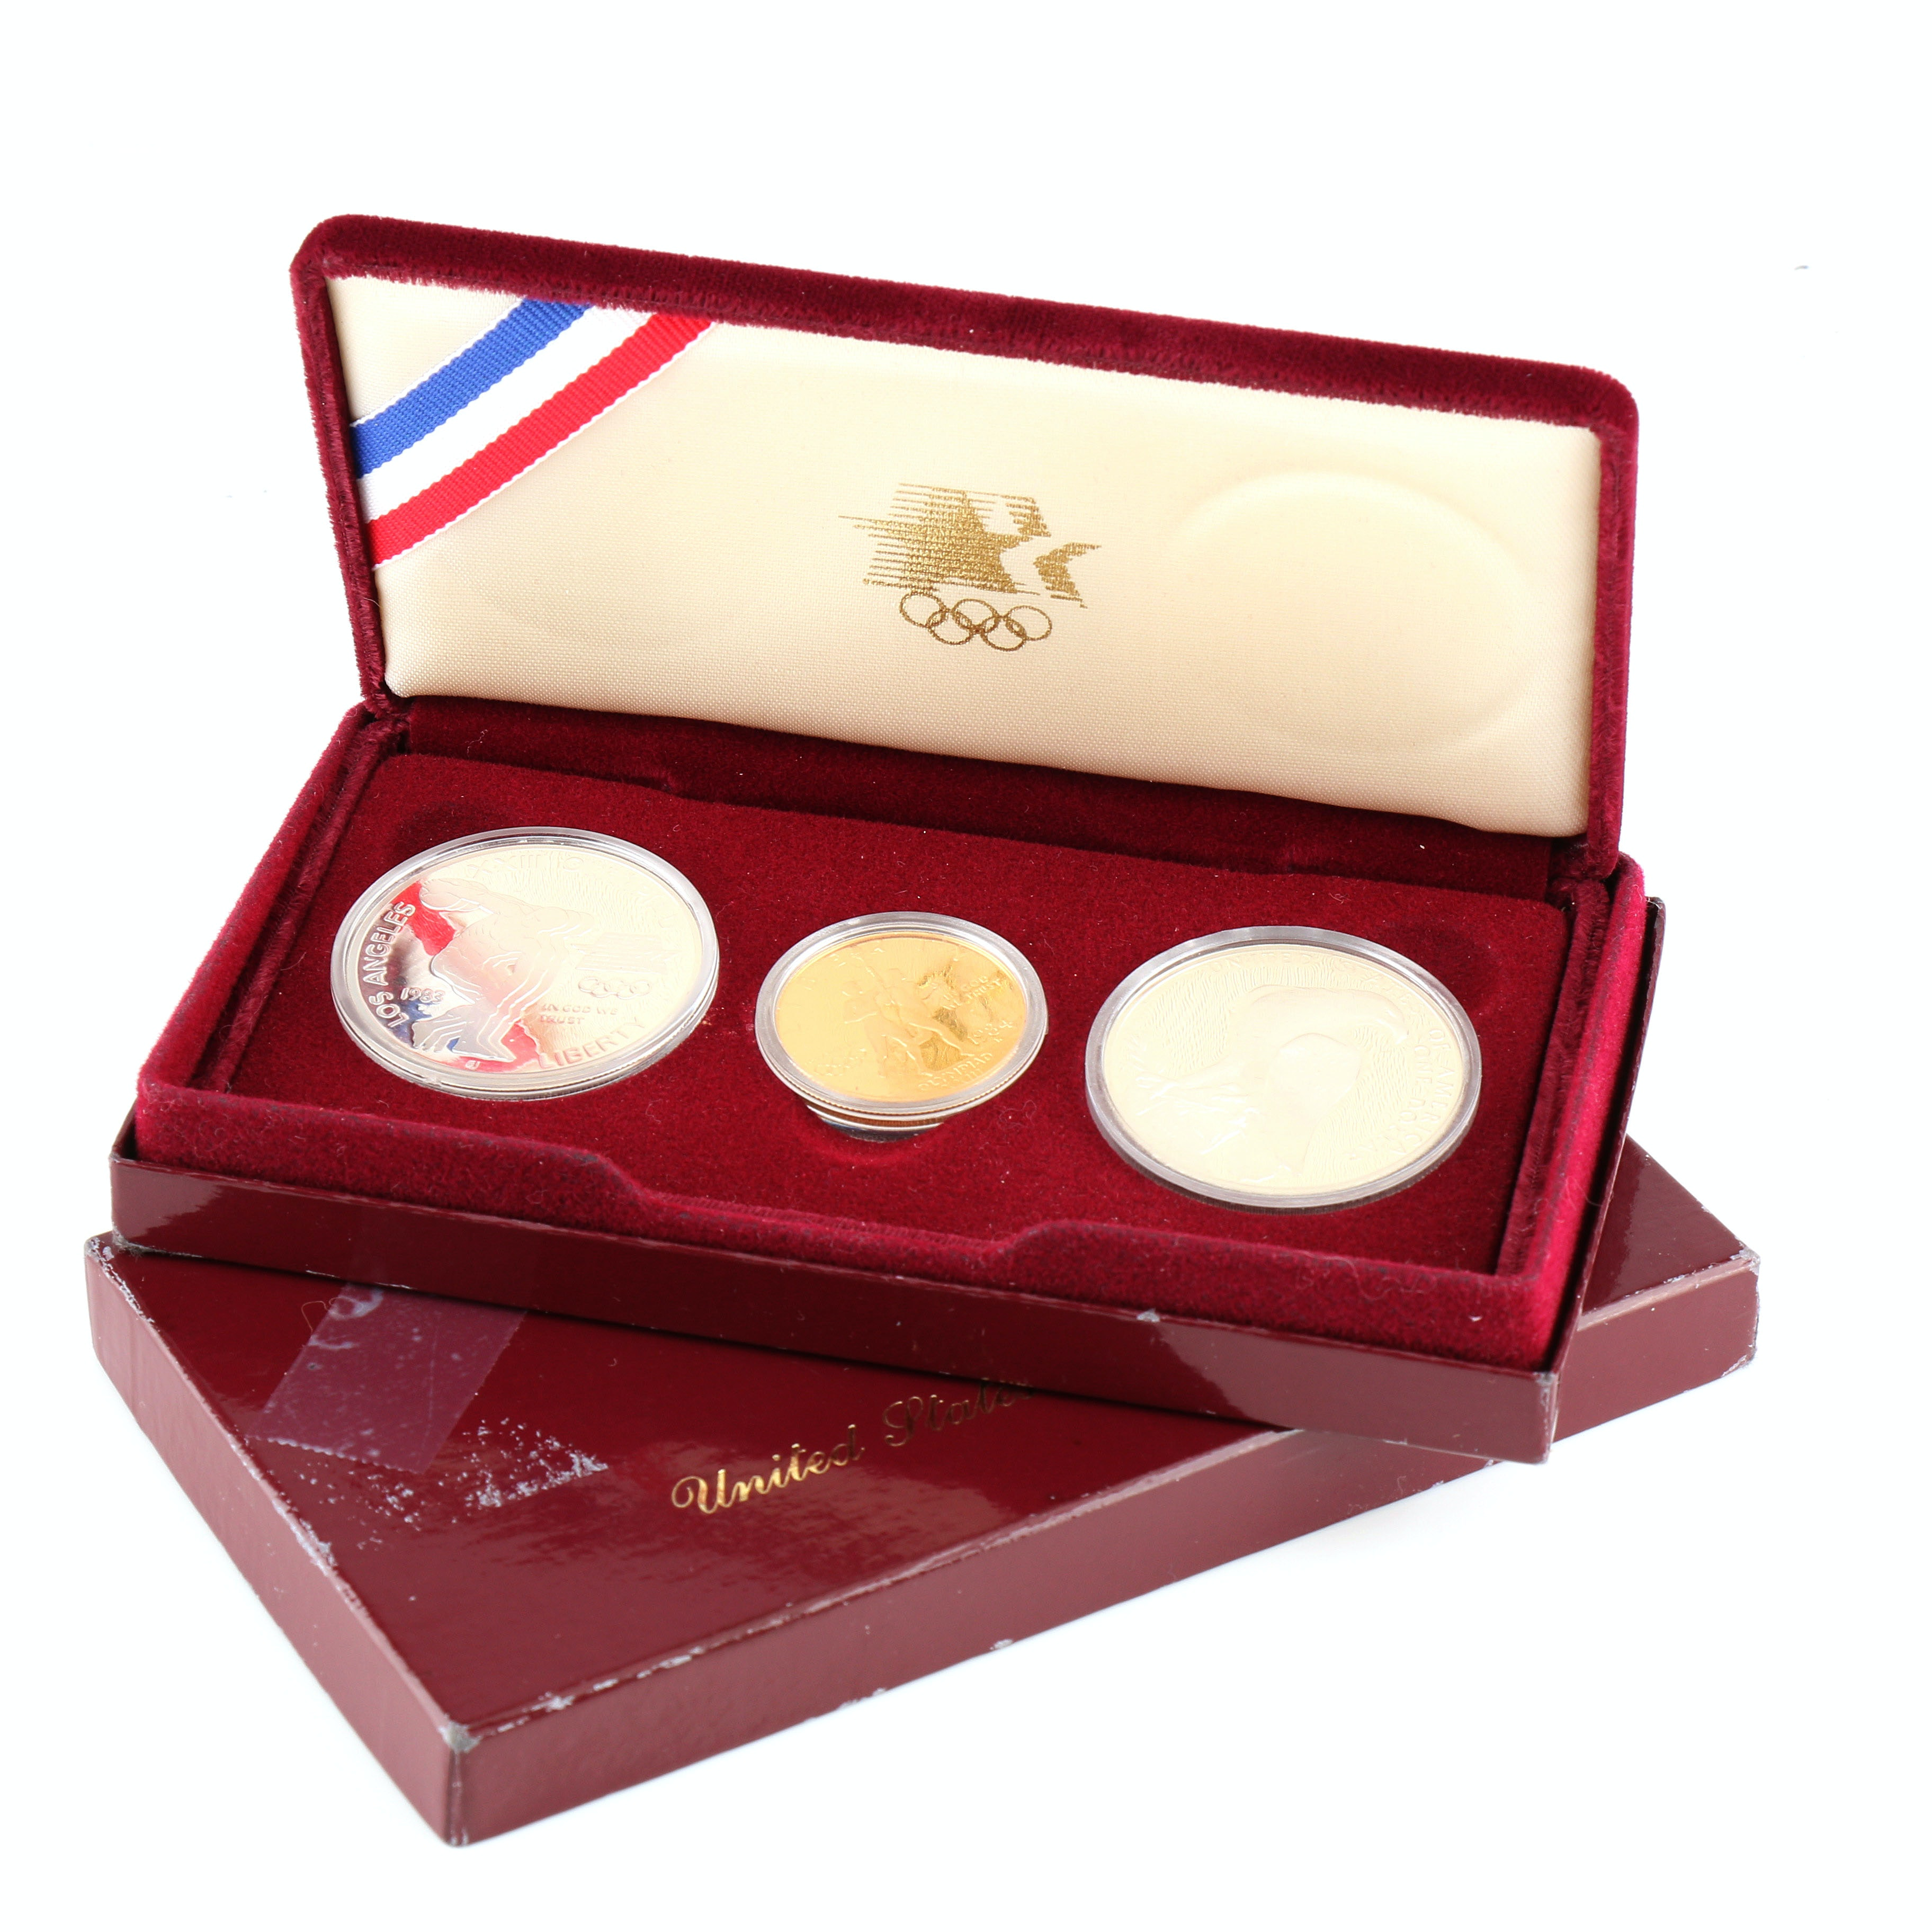 1984 Olympic Gold and Silver Commemorative U.S. Coin Set